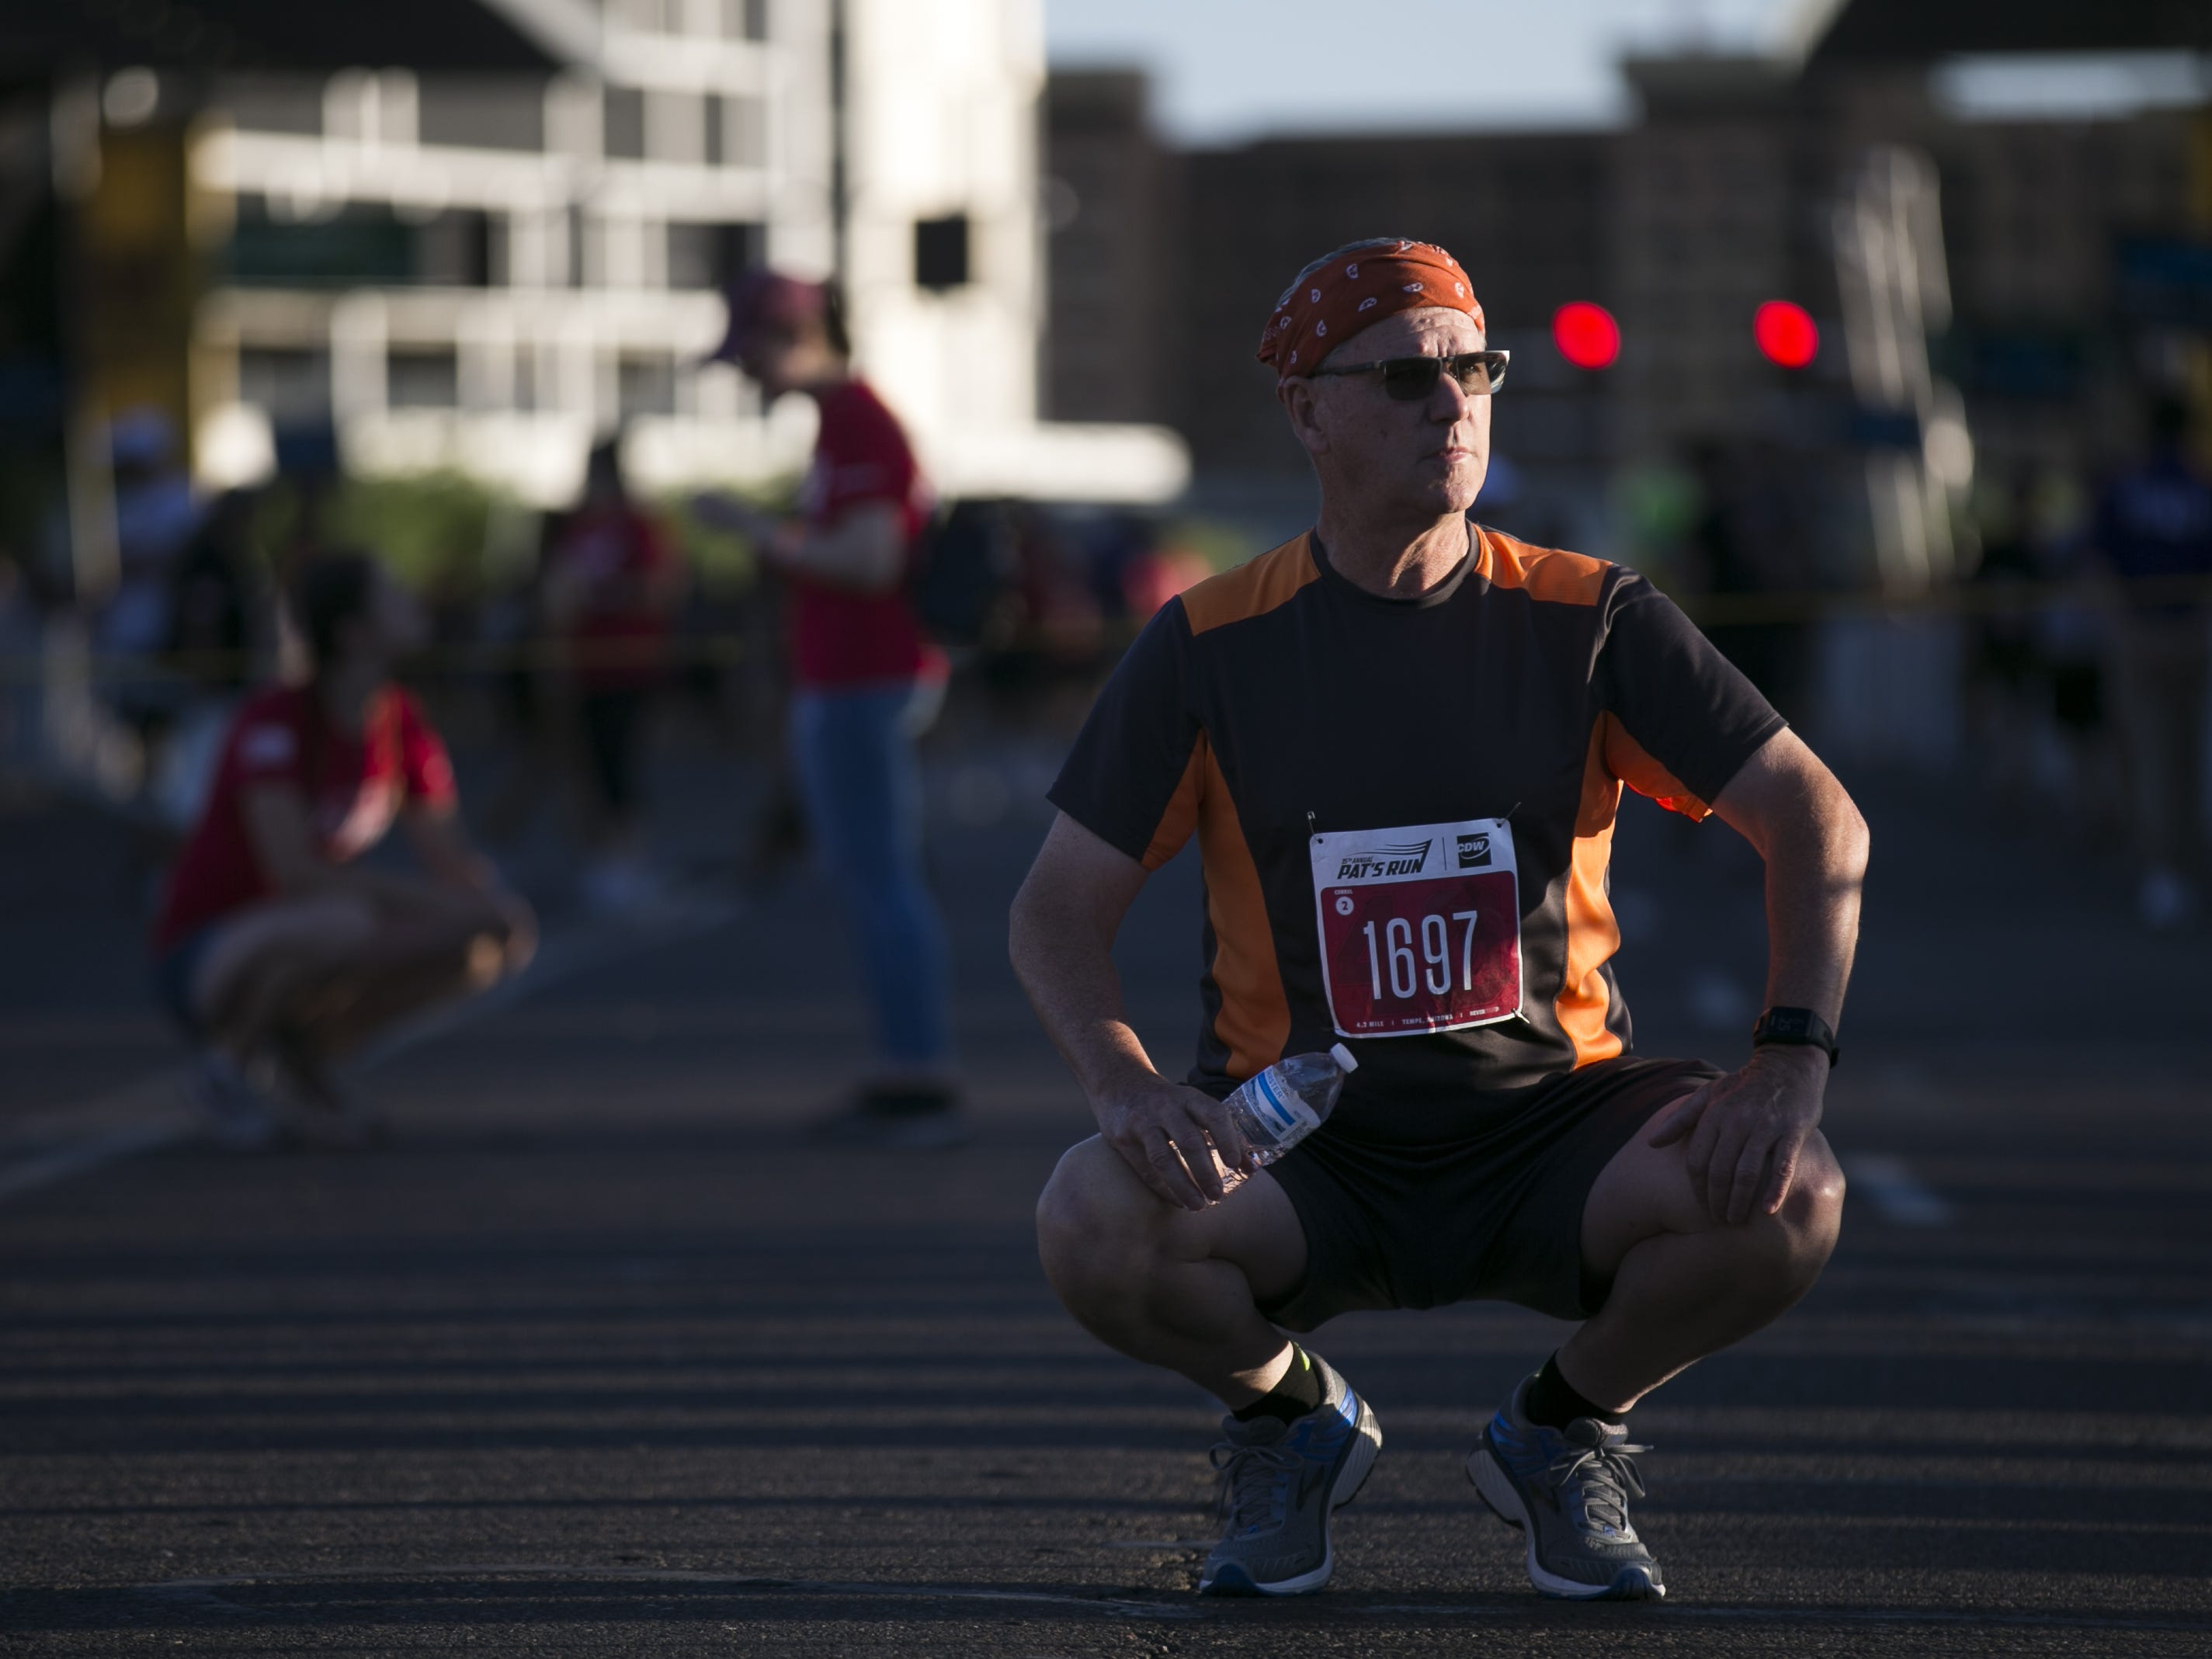 Tom Salesman stretches before running in Pat's Run 2019 in Tempe on April 27, 2019.